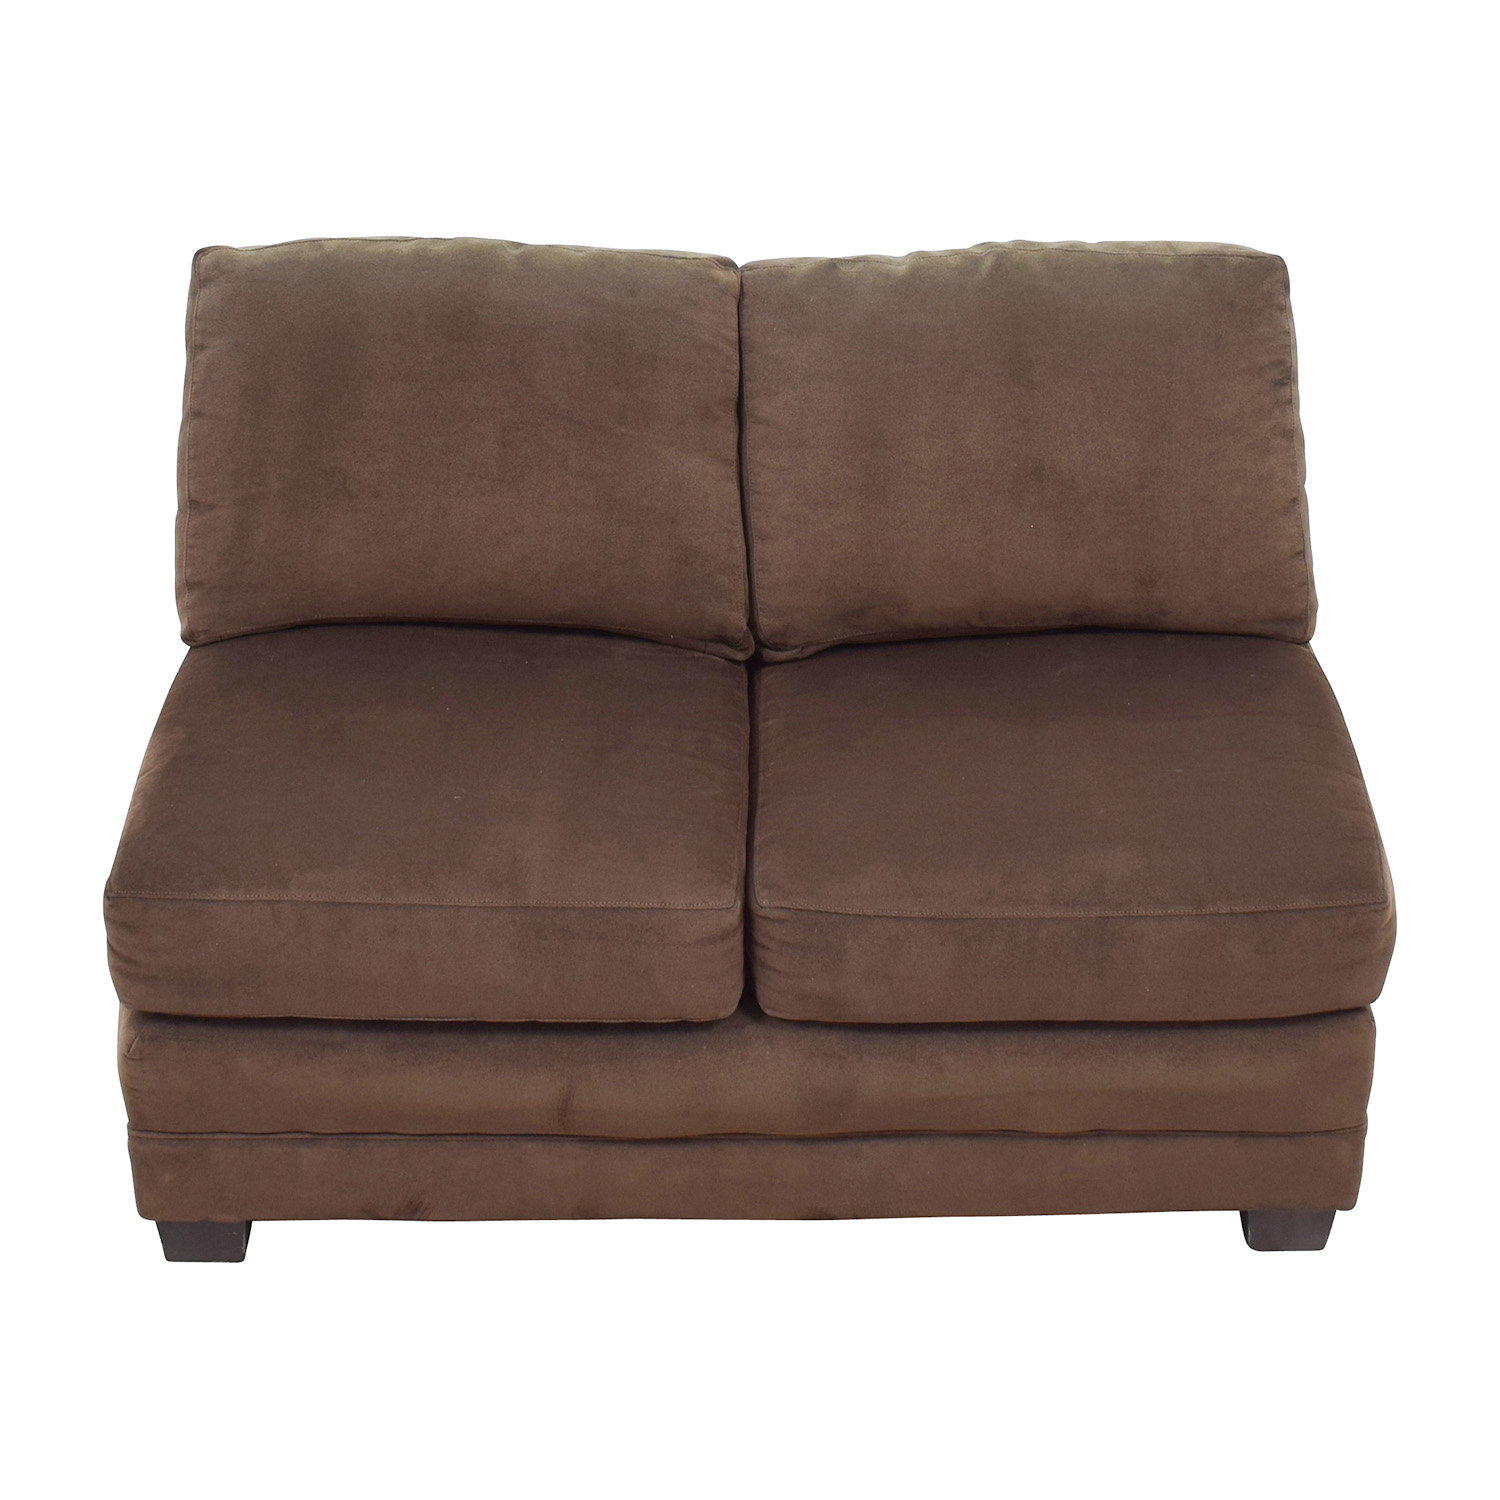 shop Crate and Barrel Brown Armless Loveseat Crate and Barrel Loveseats